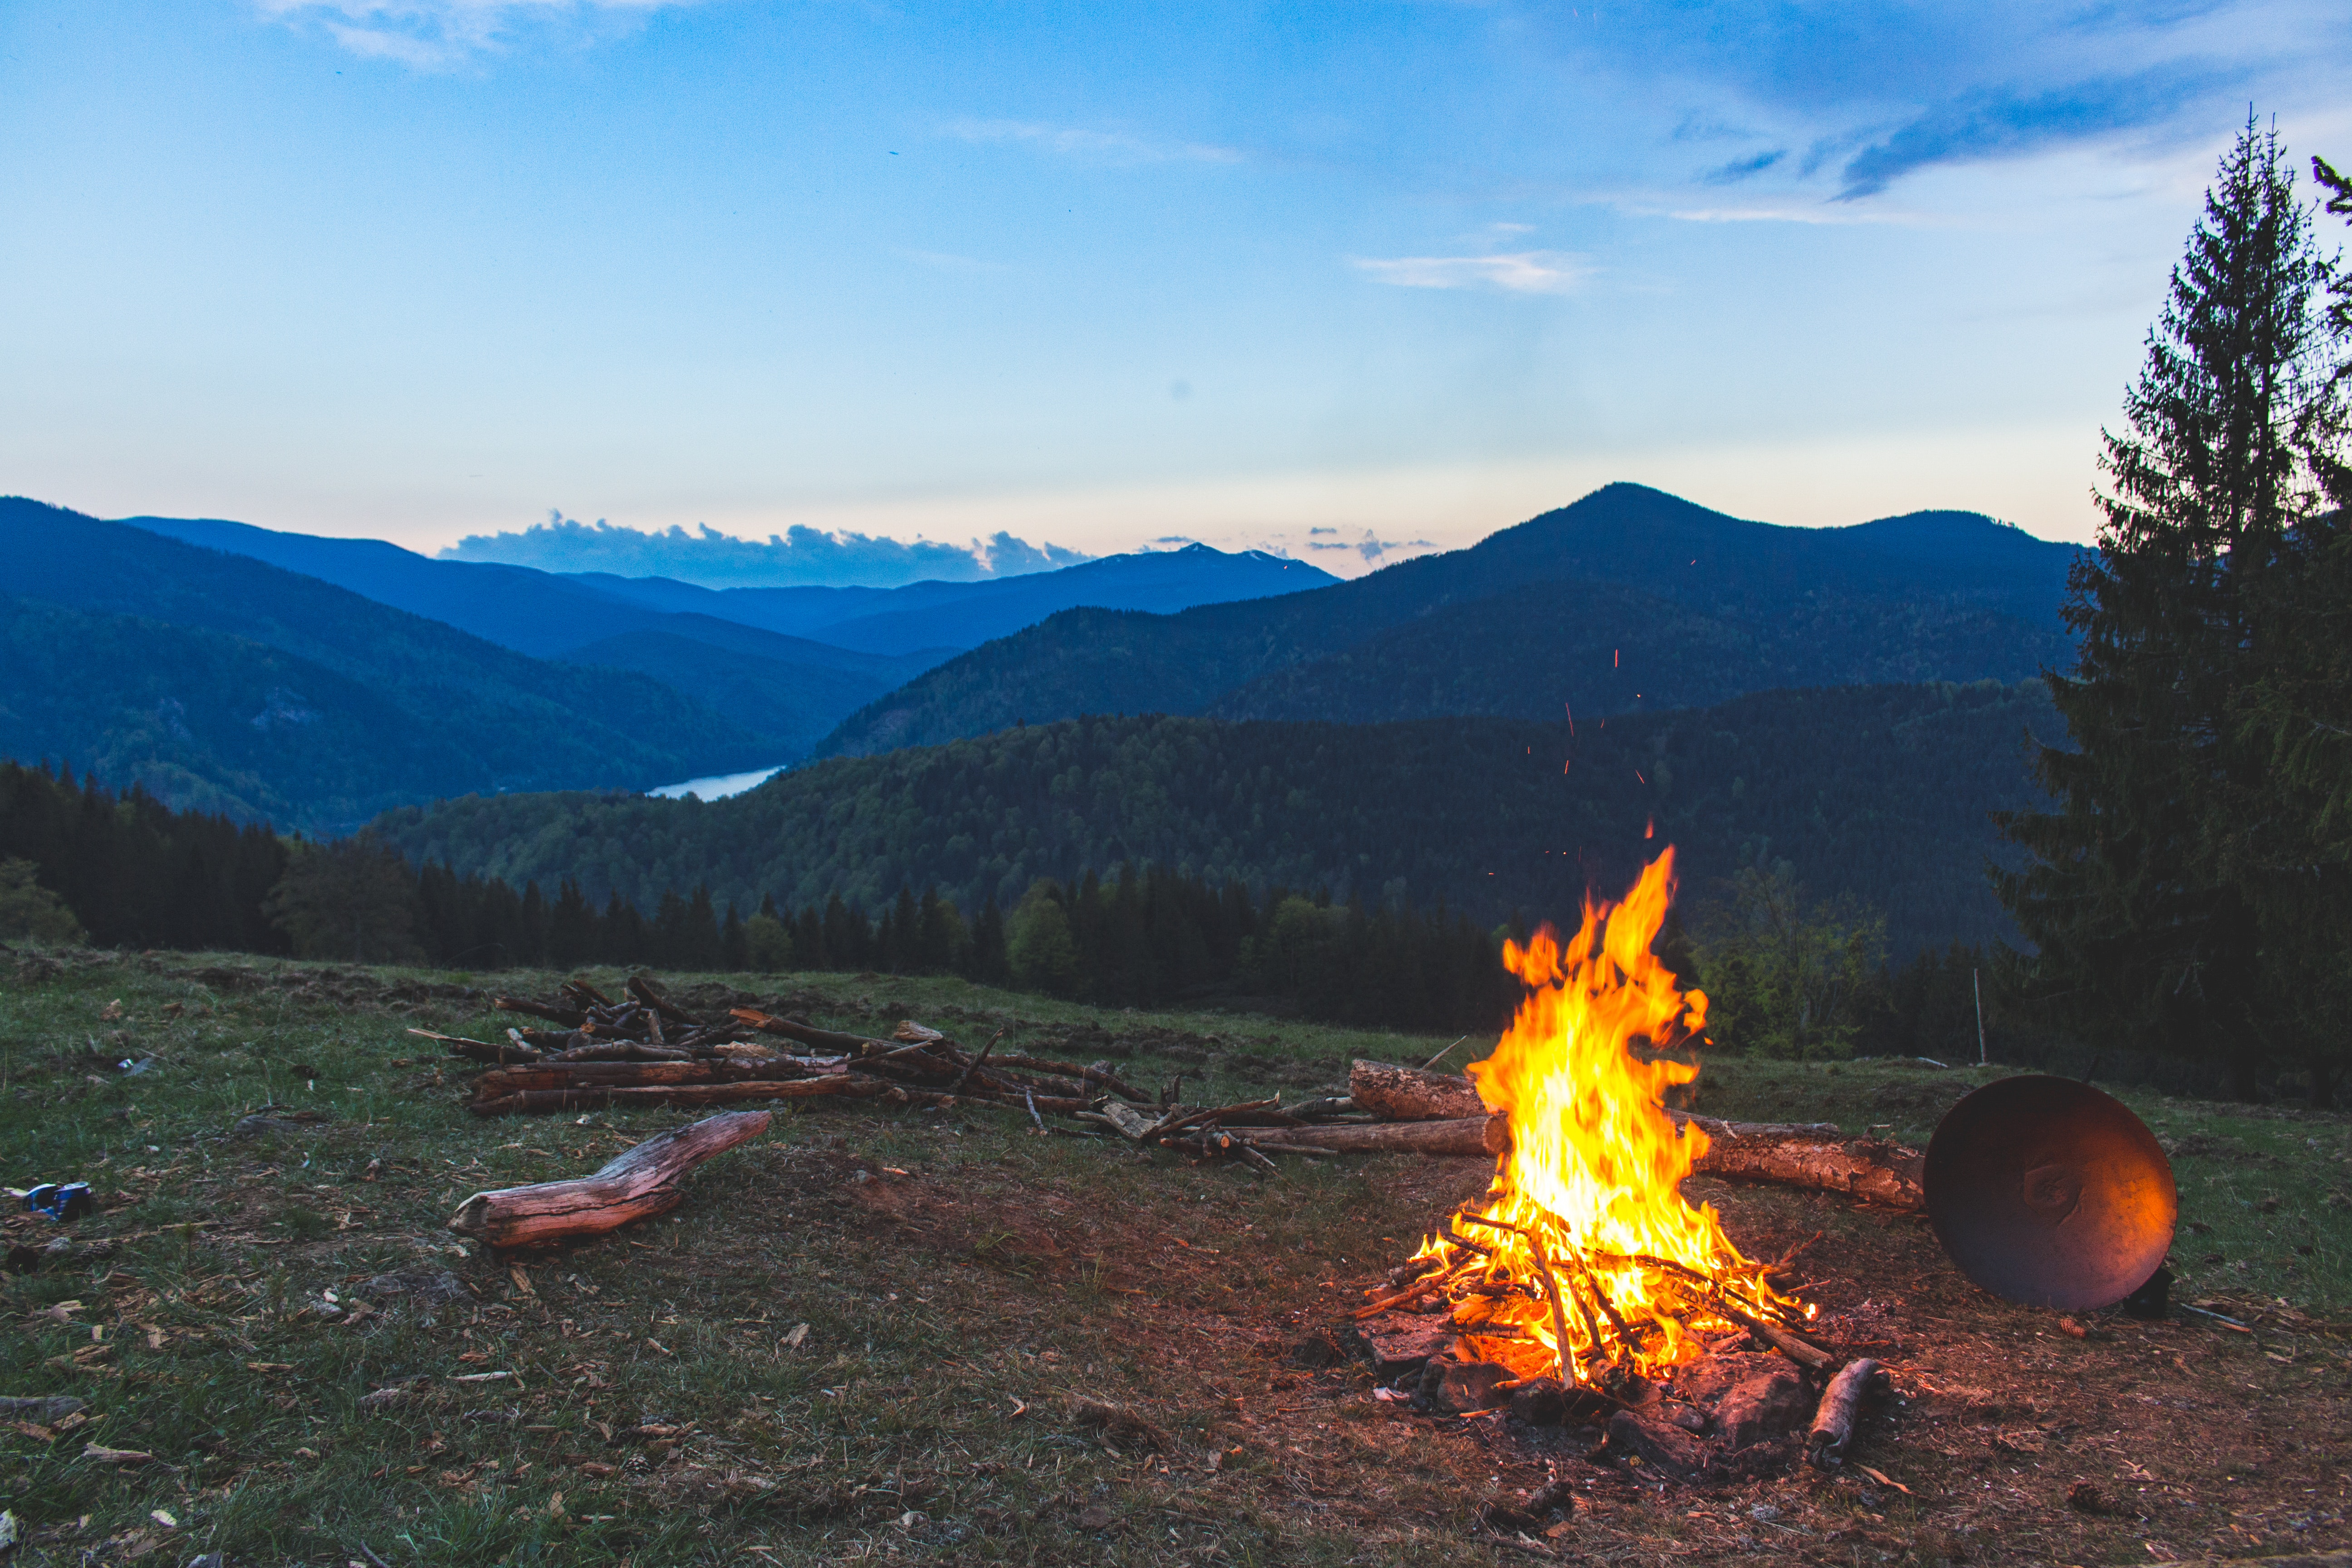 Related Searches Camping Fire Camp Bonfire Forest